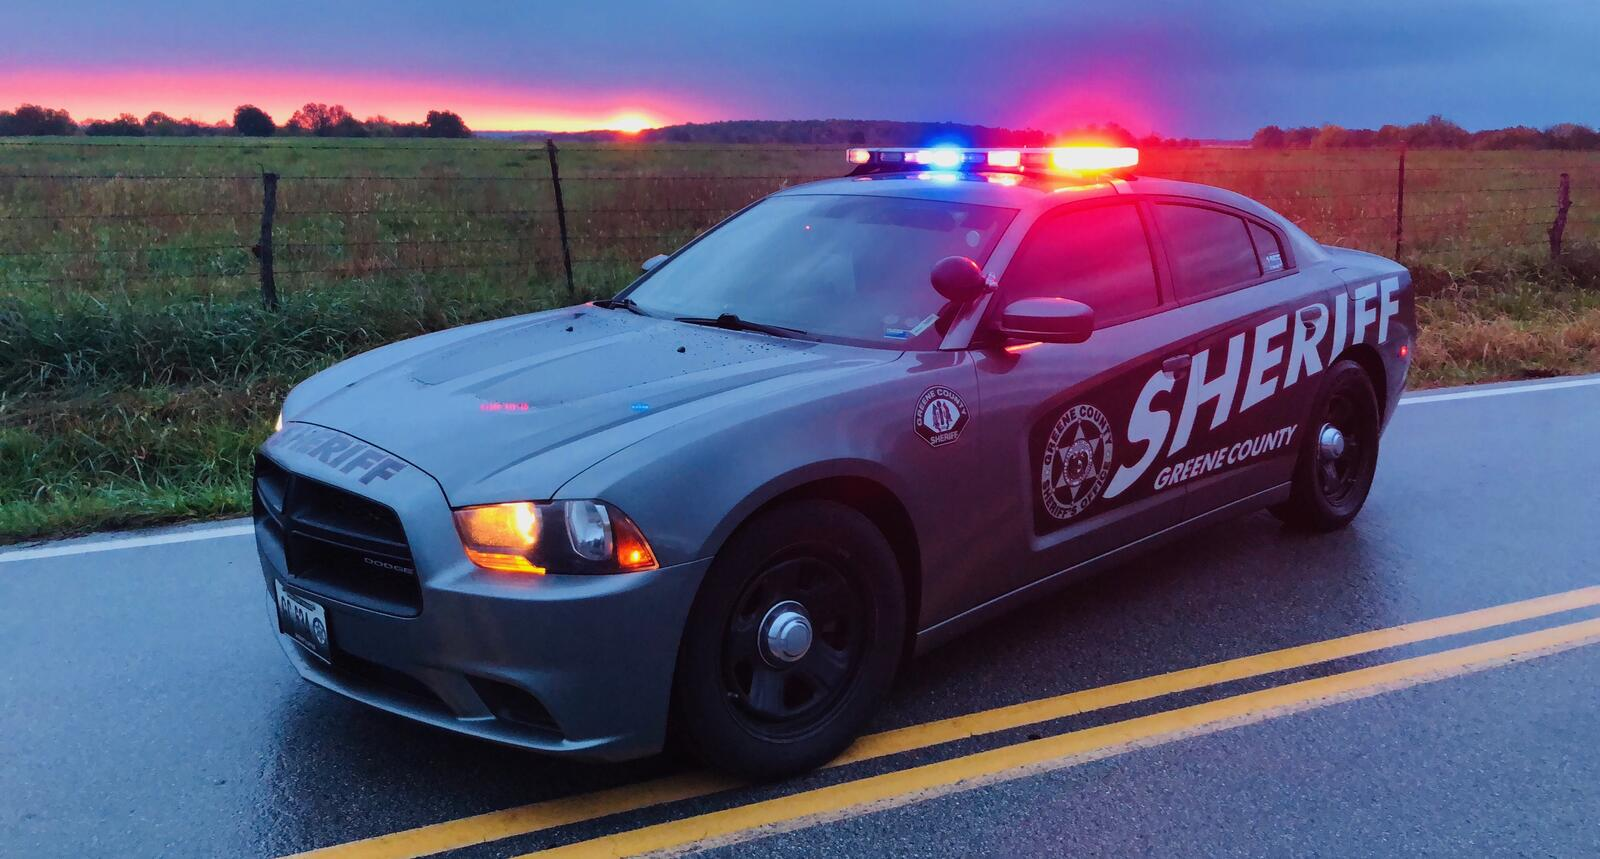 Greene County Sheriff's Office - 315 Crime and Safety